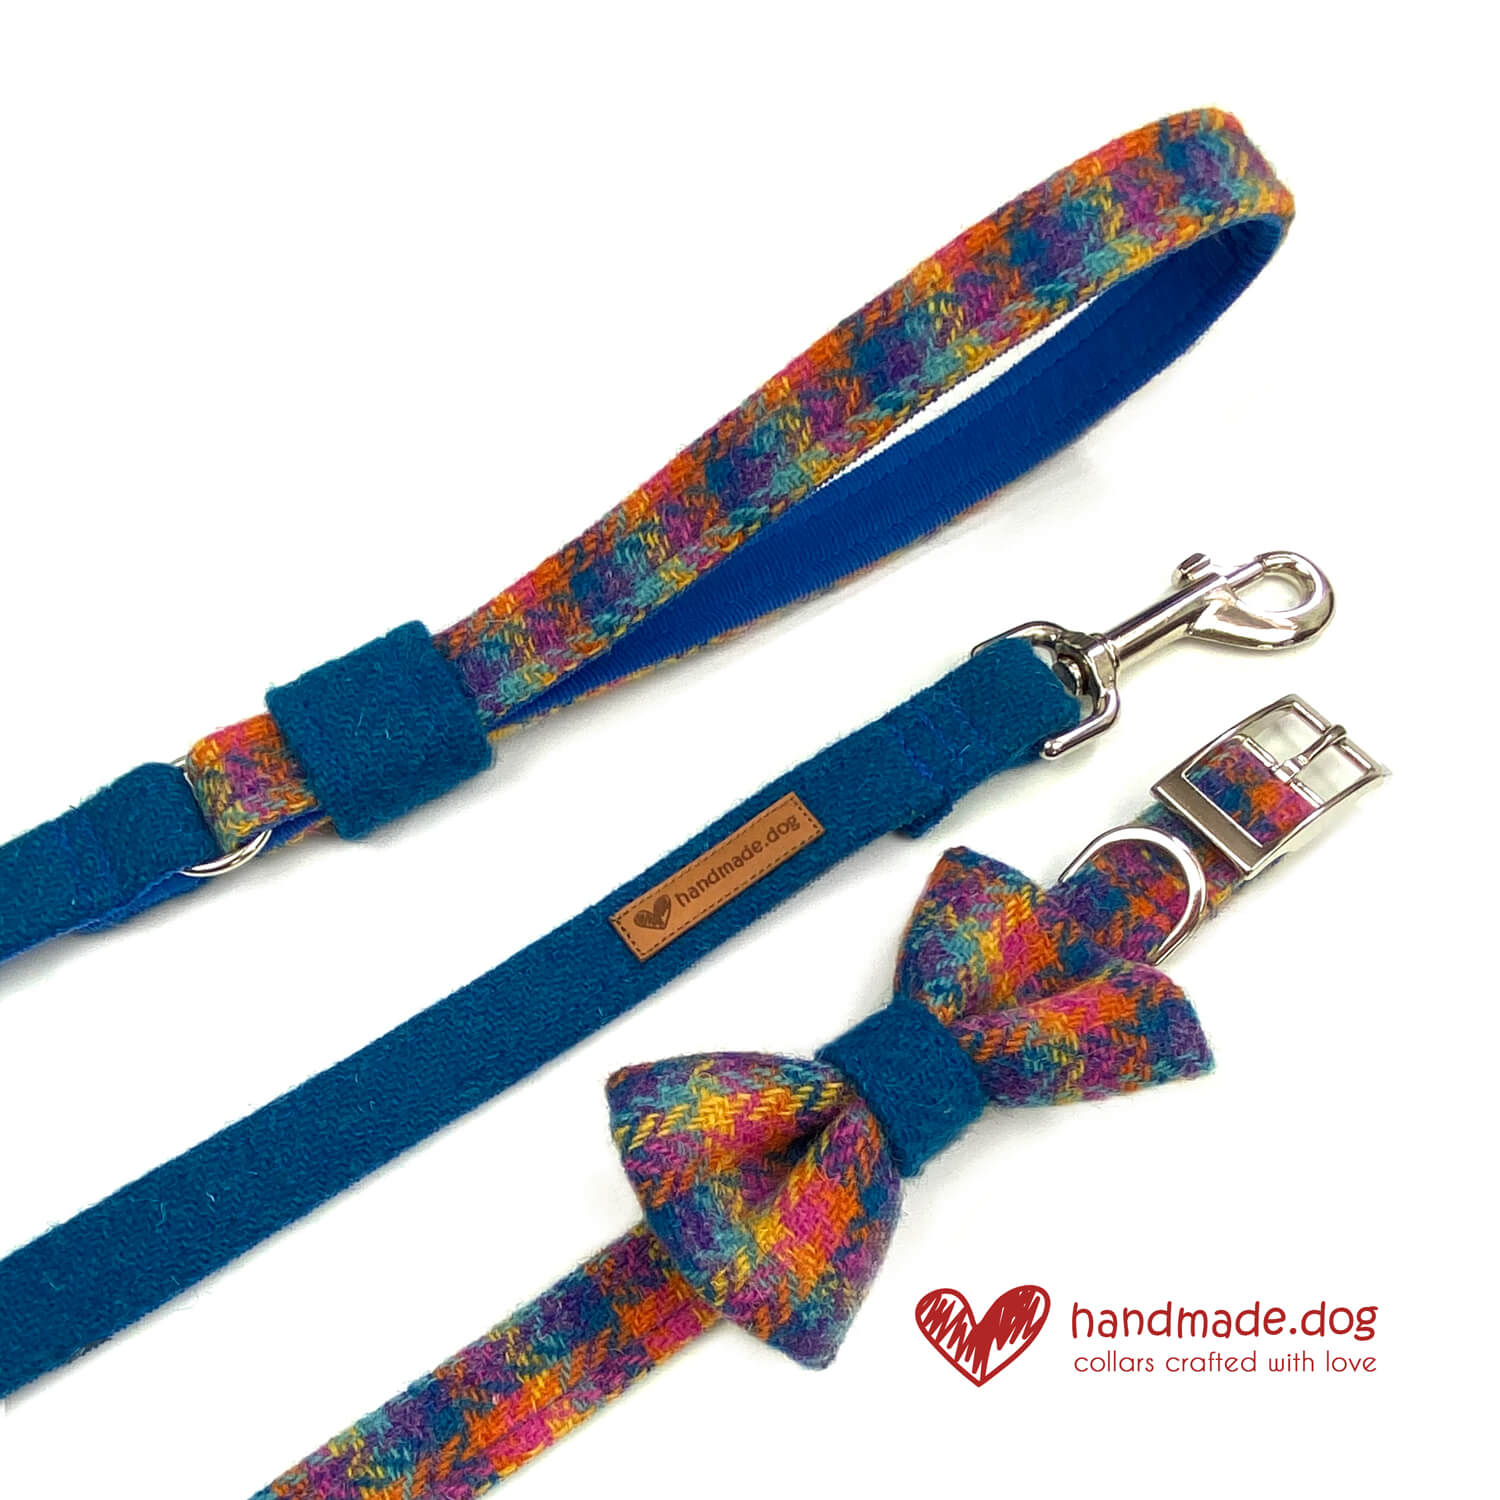 Limited Edition 'Harris Tweed' Havana Range including dog collar, dog lead and god dickie bow.